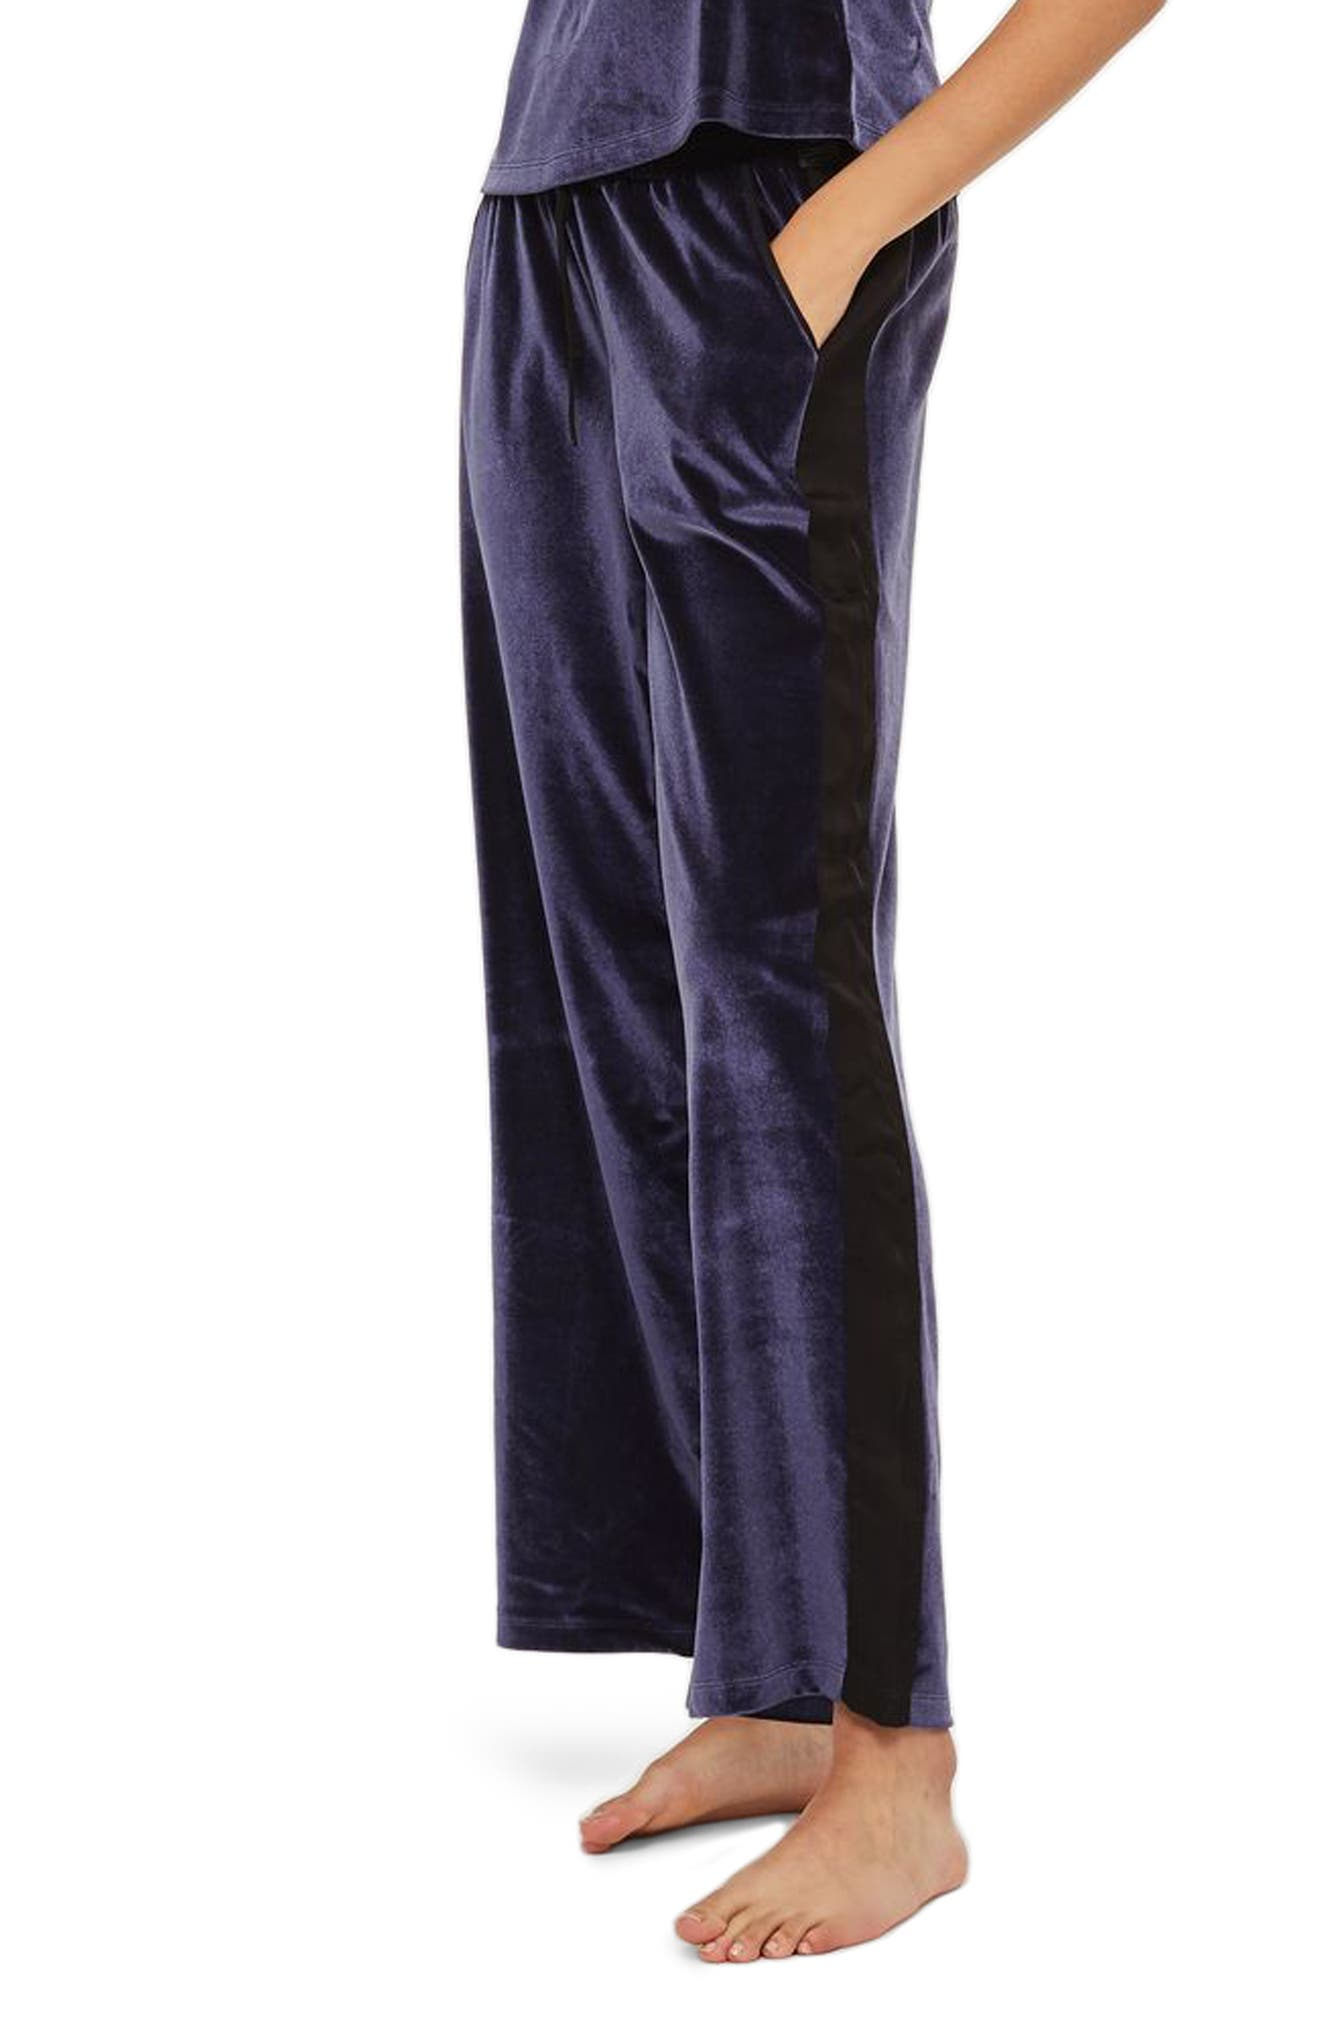 Nocturne Velvet Pajama Pants,                             Main thumbnail 1, color,                             Navy Blue